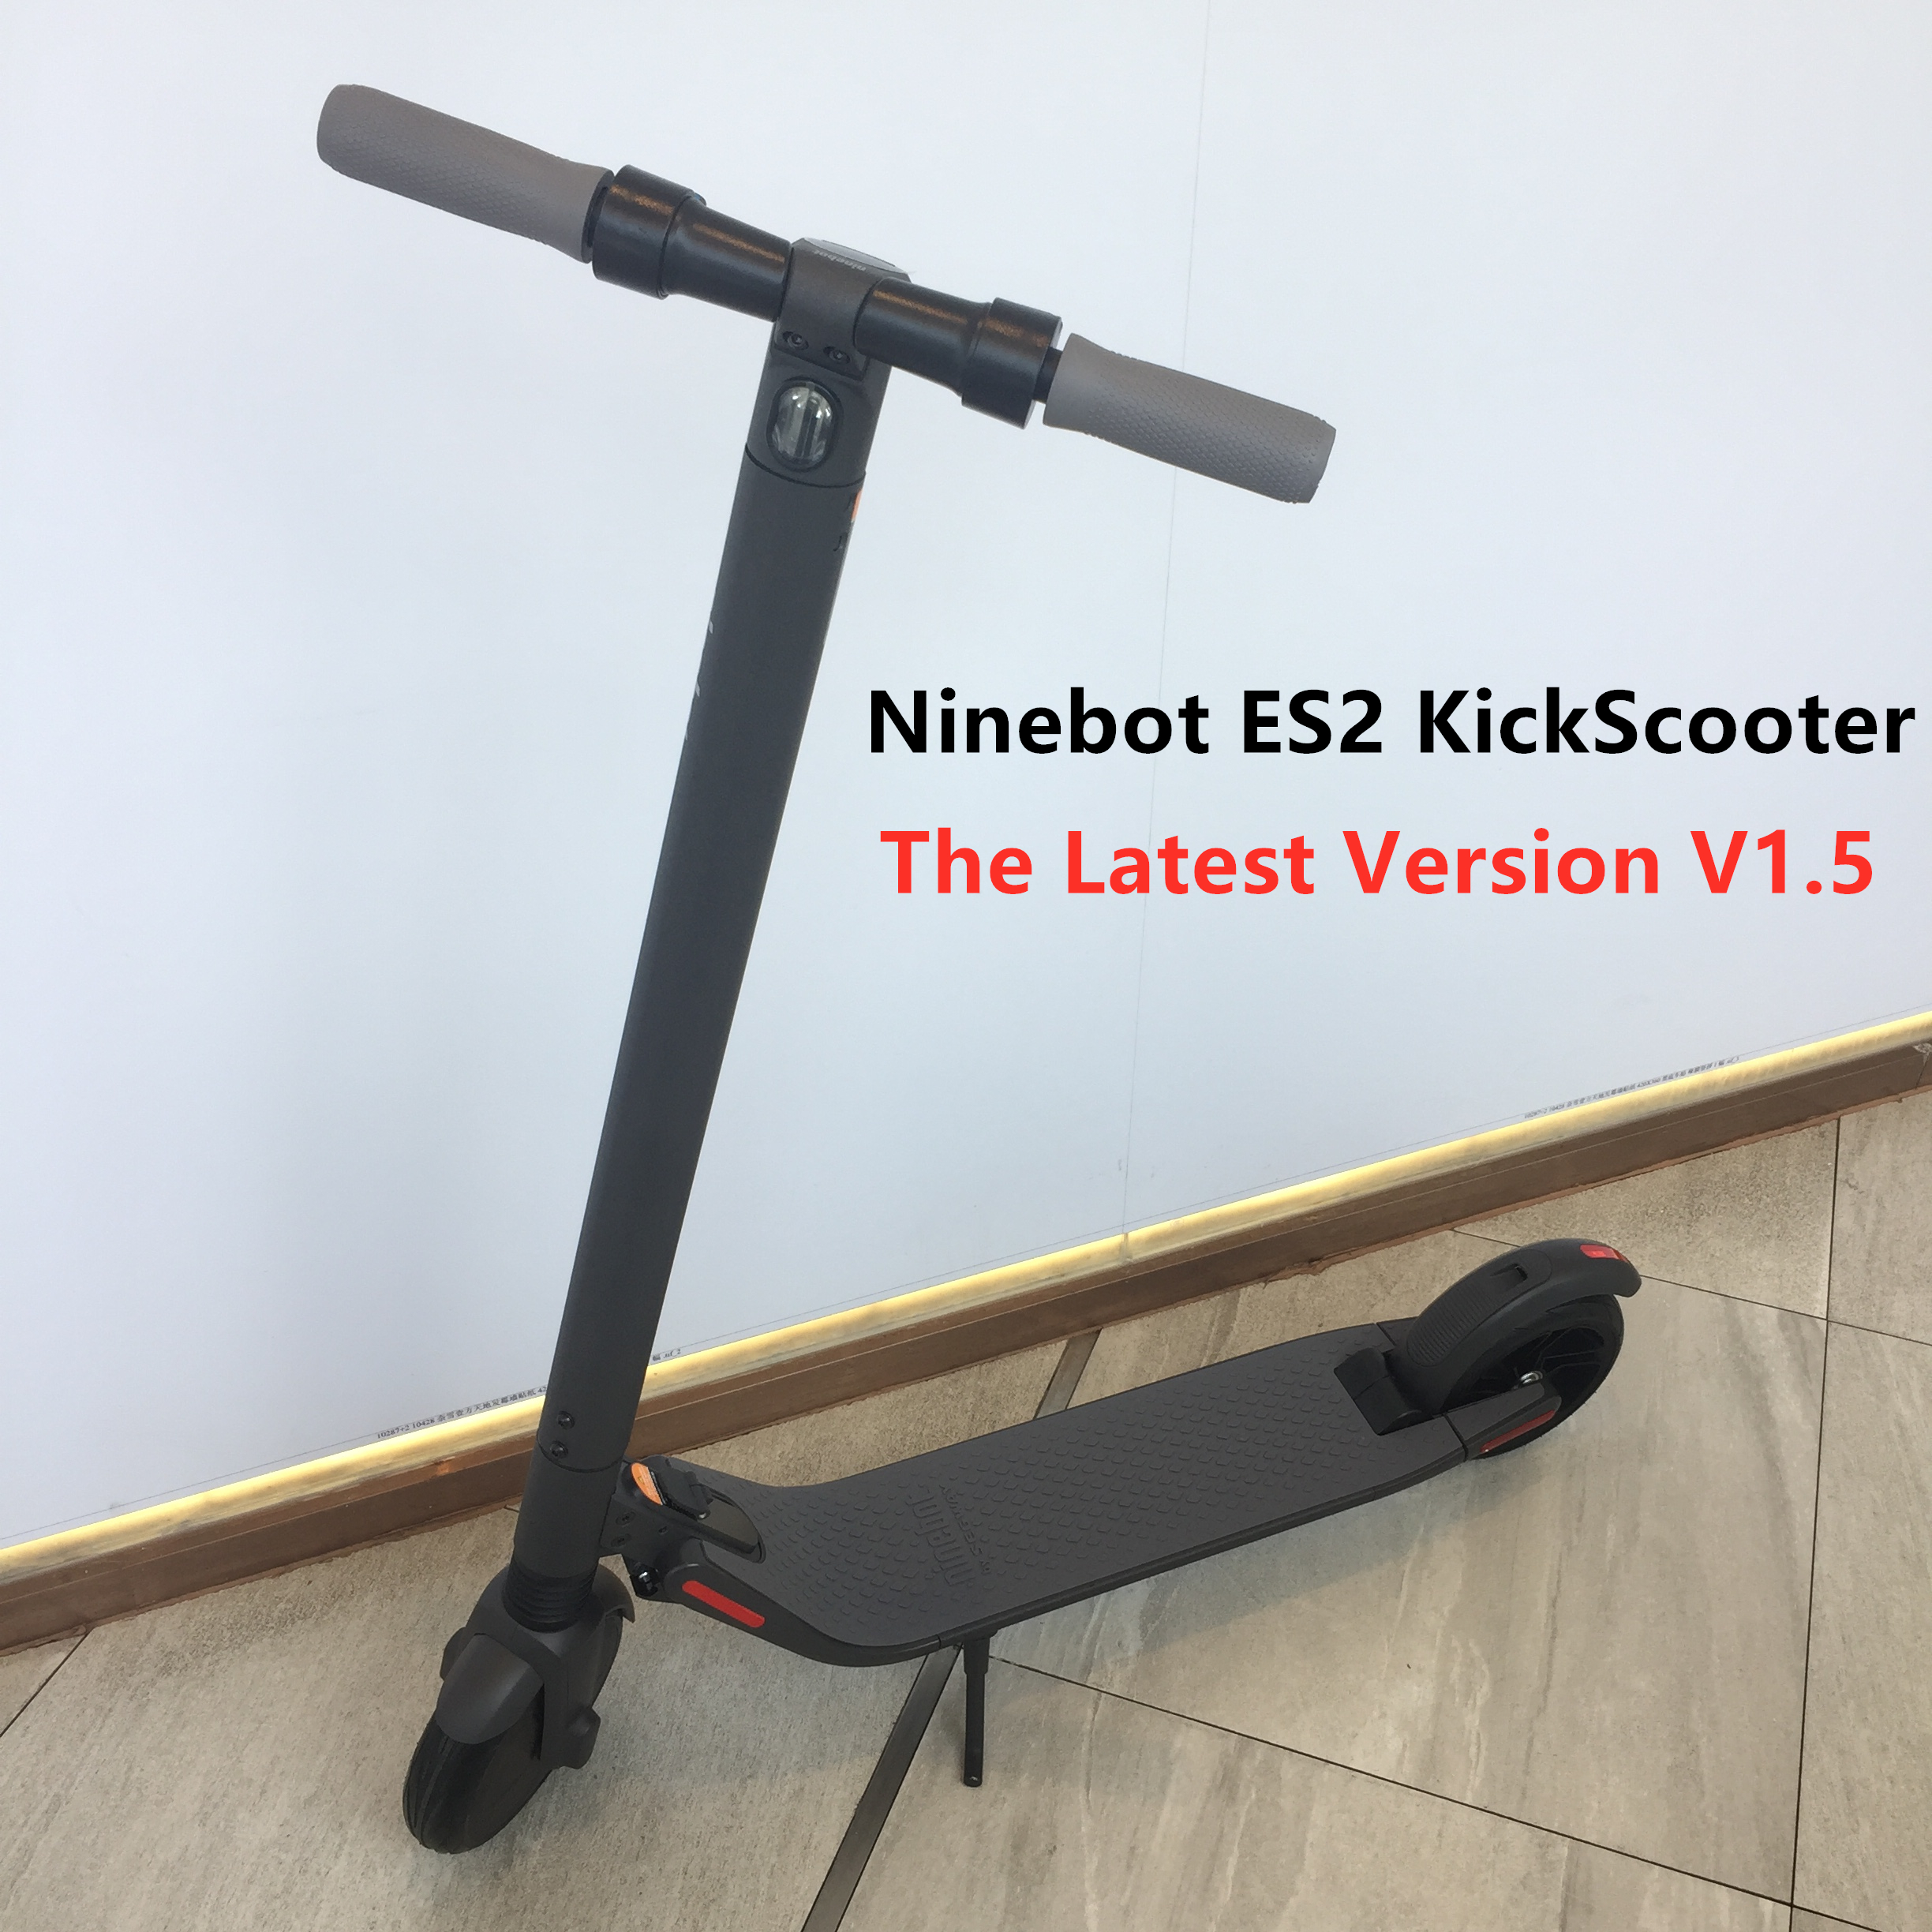 Original Ninebot ES2 Smart Electric Scooter The Latest V1.5 Foldable Kick Scooter Lightweight 25KM Skateboard Long Hover Board